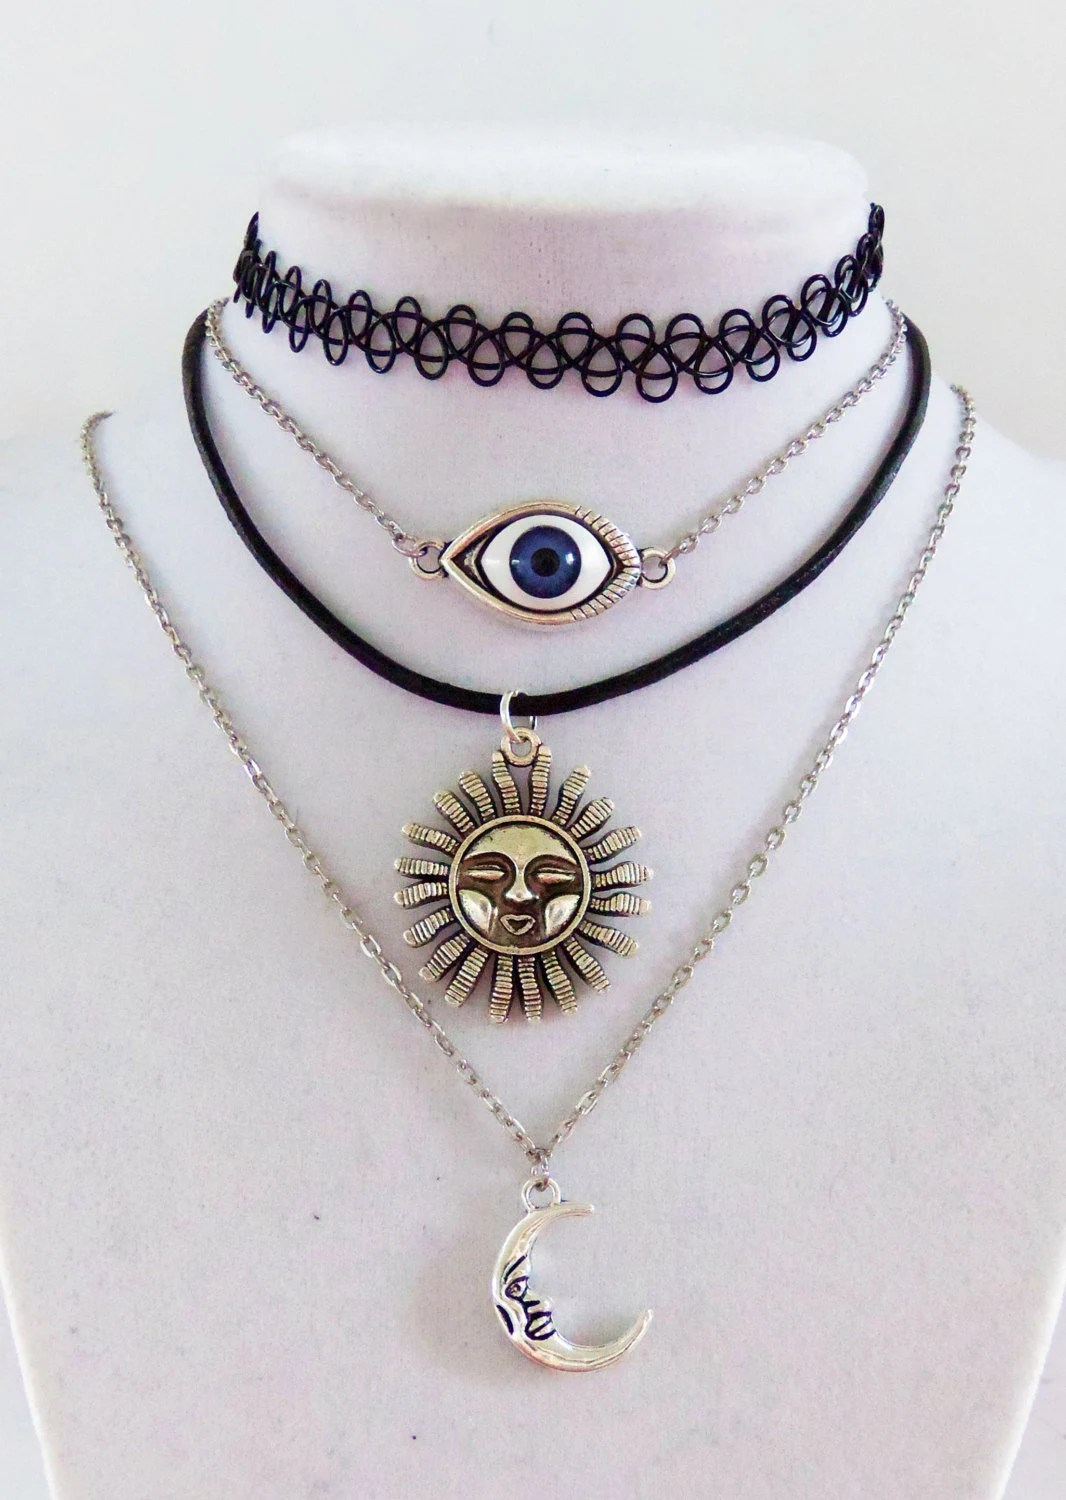 90S Style Grunge Choker Grunge Necklace Stretchy Tattoo Ideas And Designs